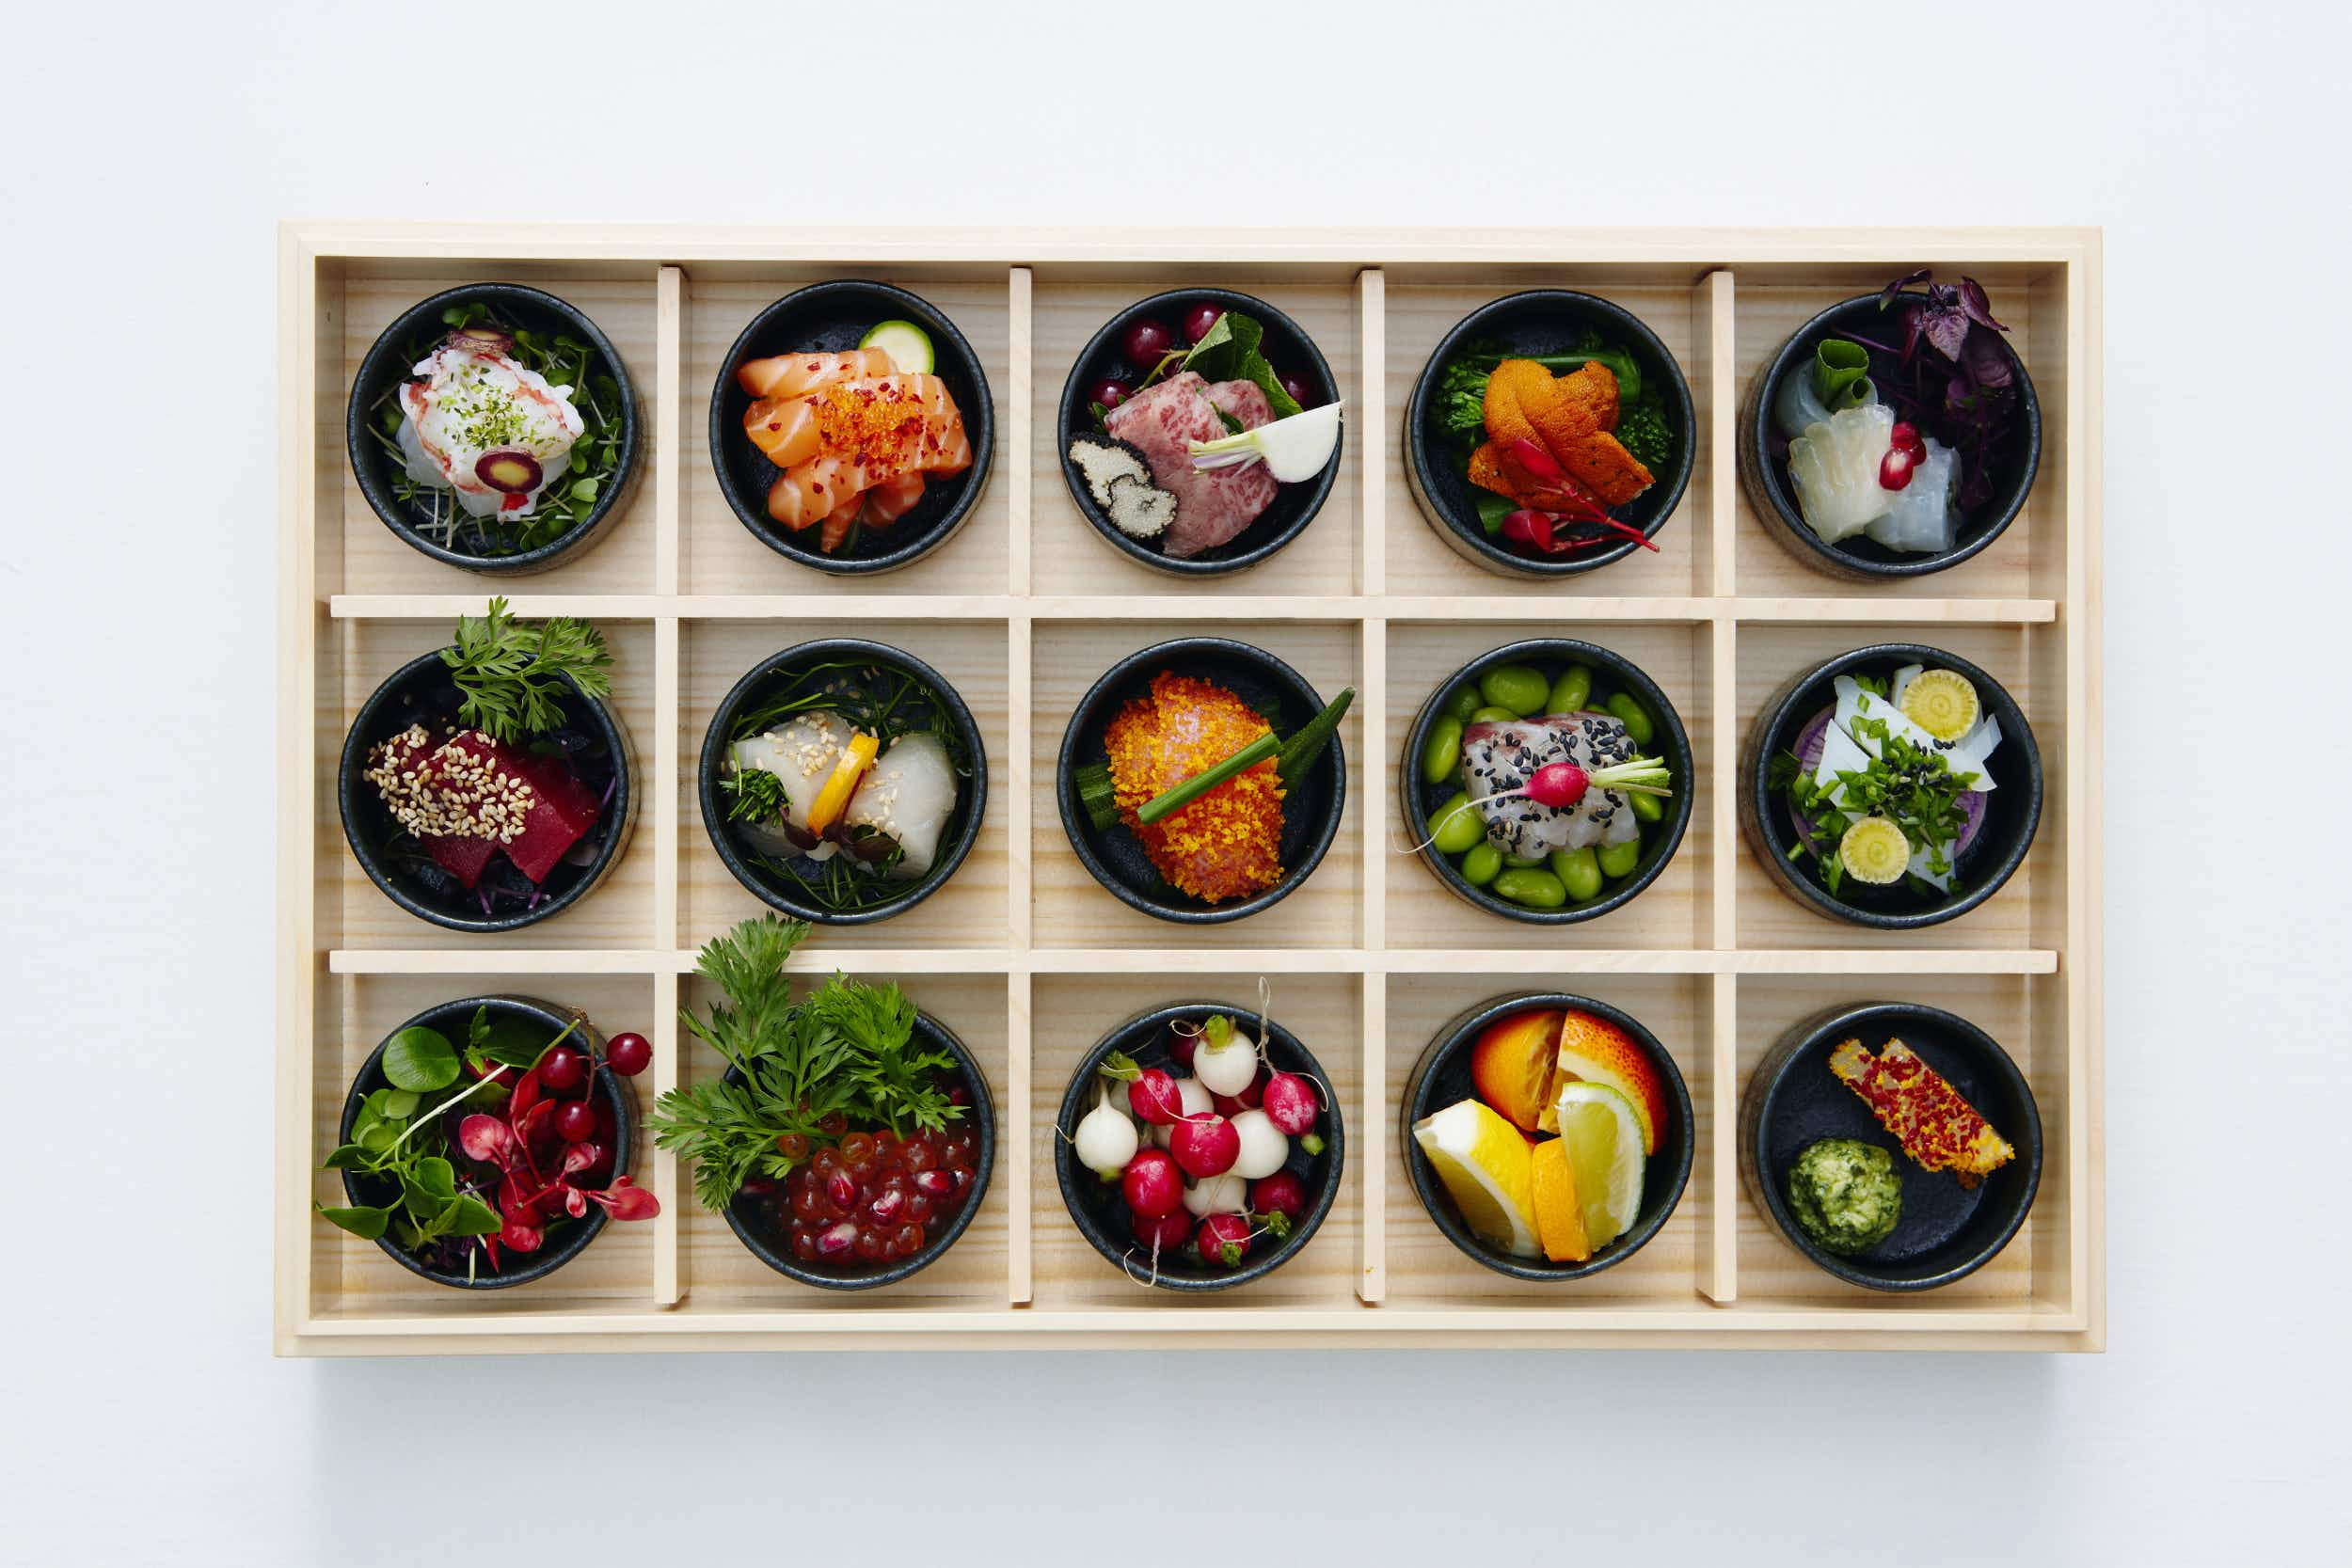 Experience authentic food, art and culture at Japan House London this summer